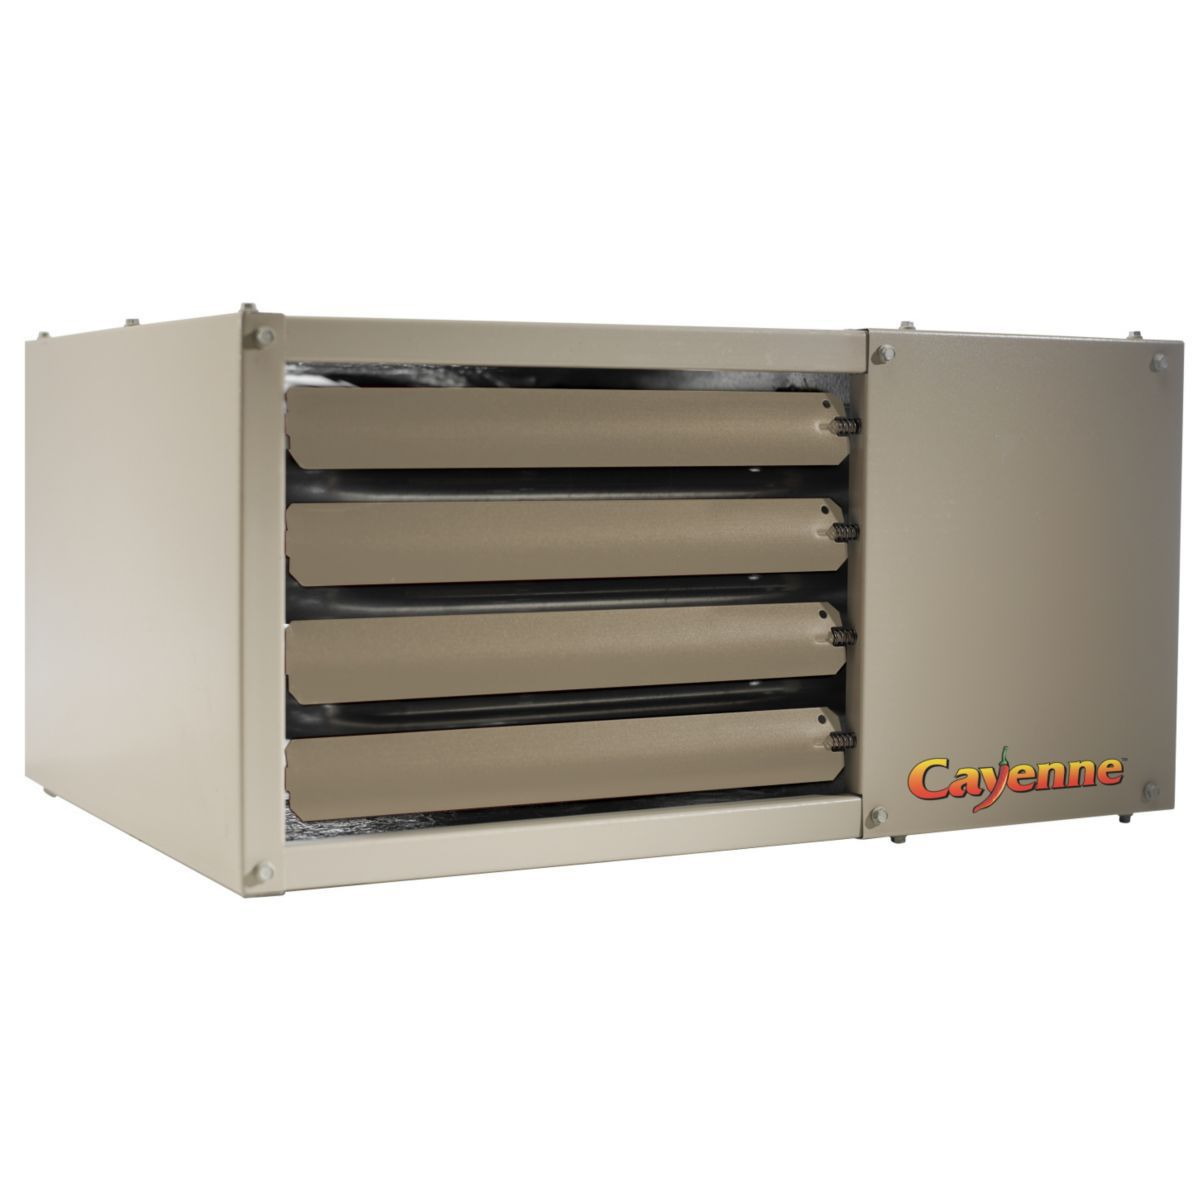 heater profile hot steel natural garage grays p stainless vented ceiling modine gas heaters power dawg btu low unit